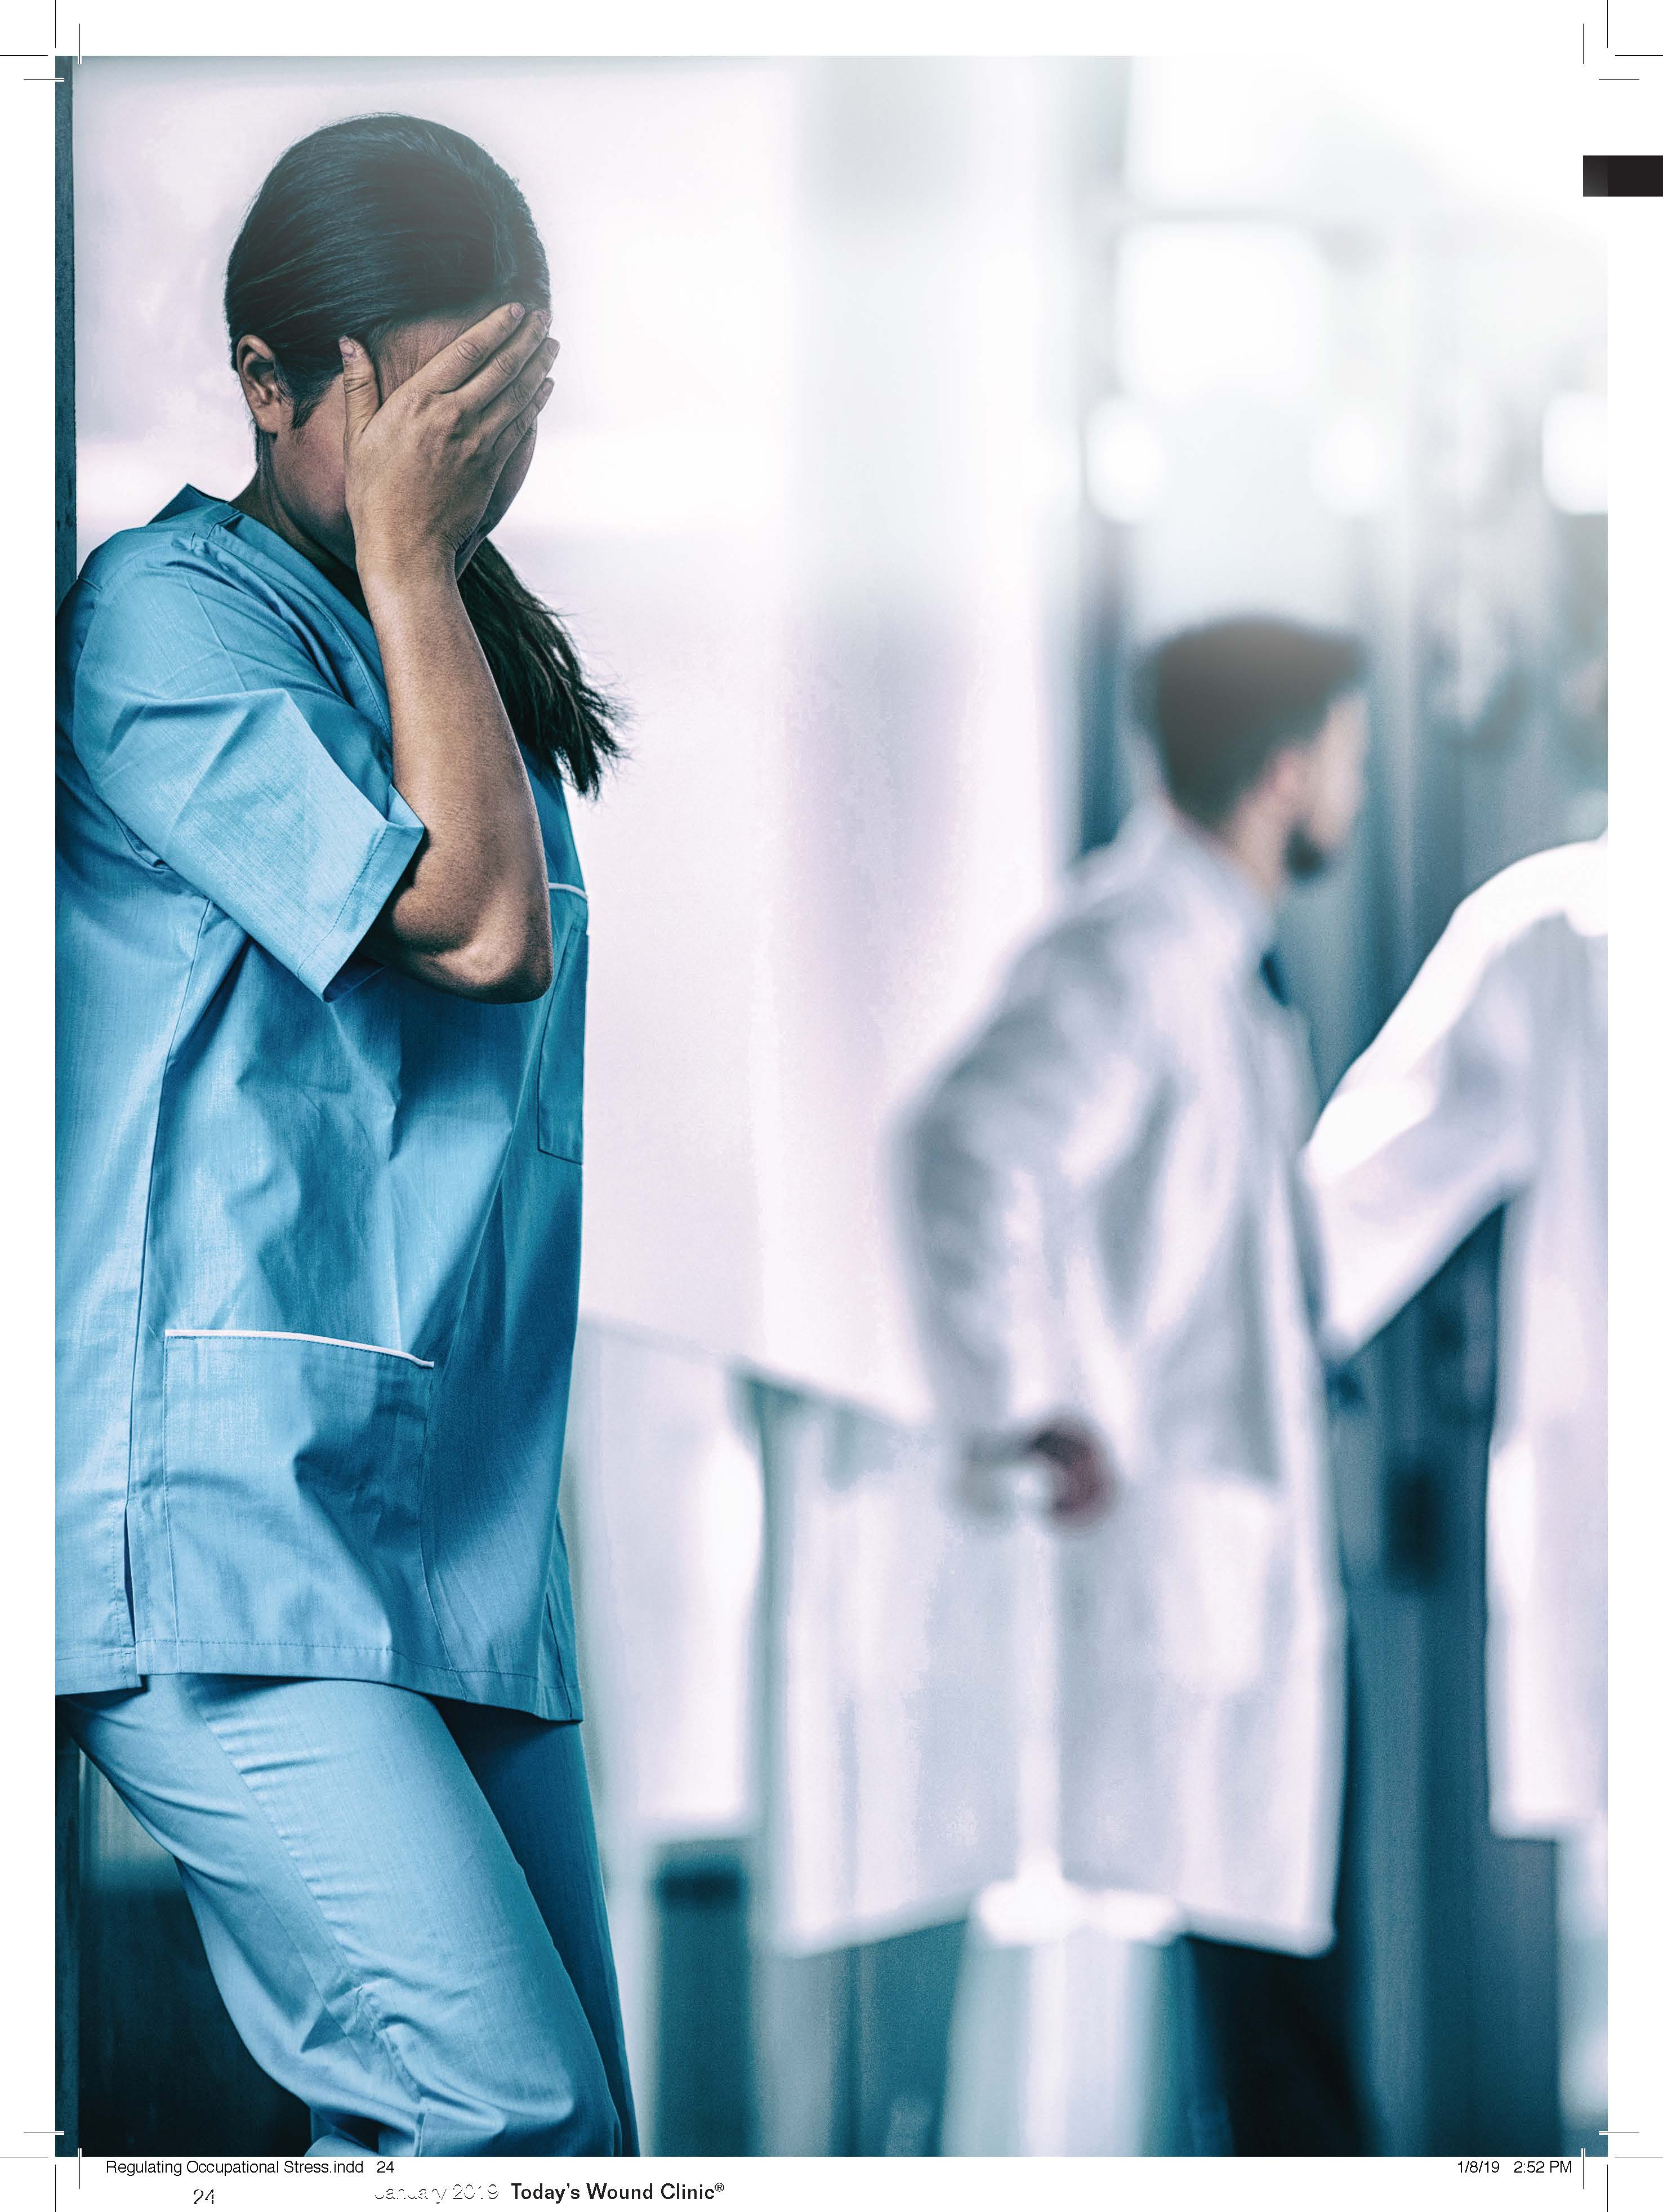 Regulating Exposure to Occupational Stress: A Guide for Hospitals